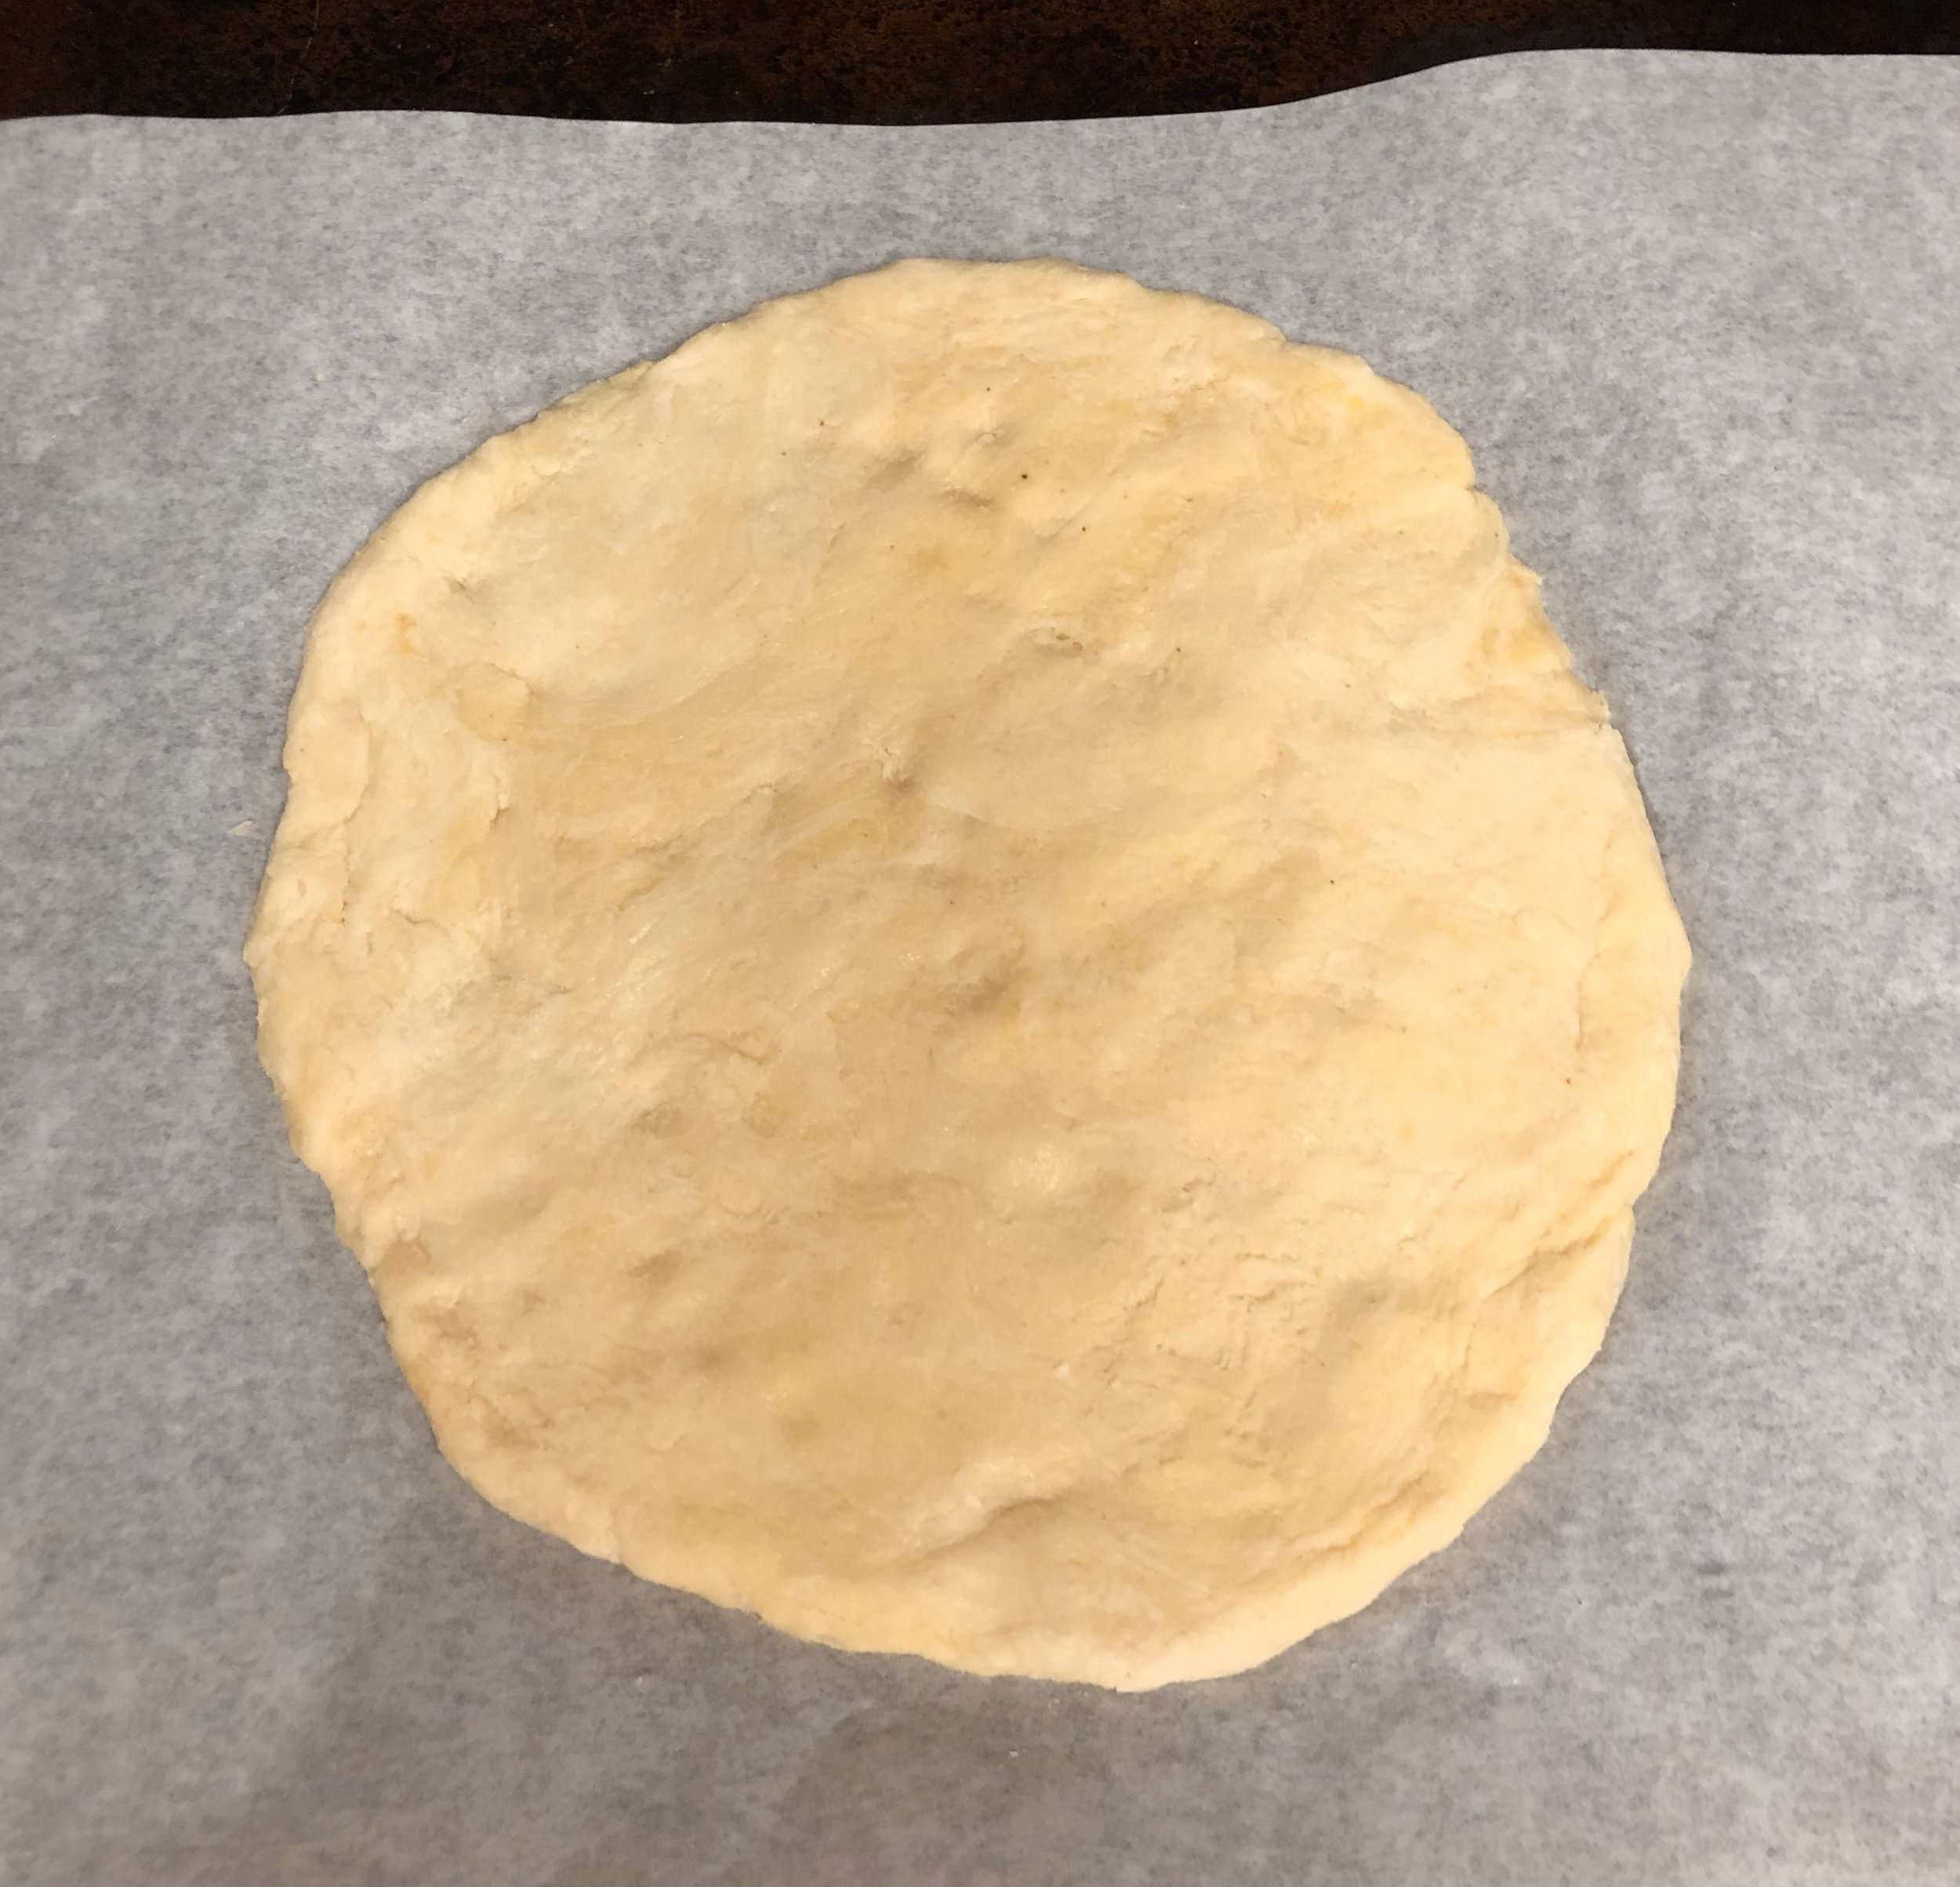 Keto Pizza dough